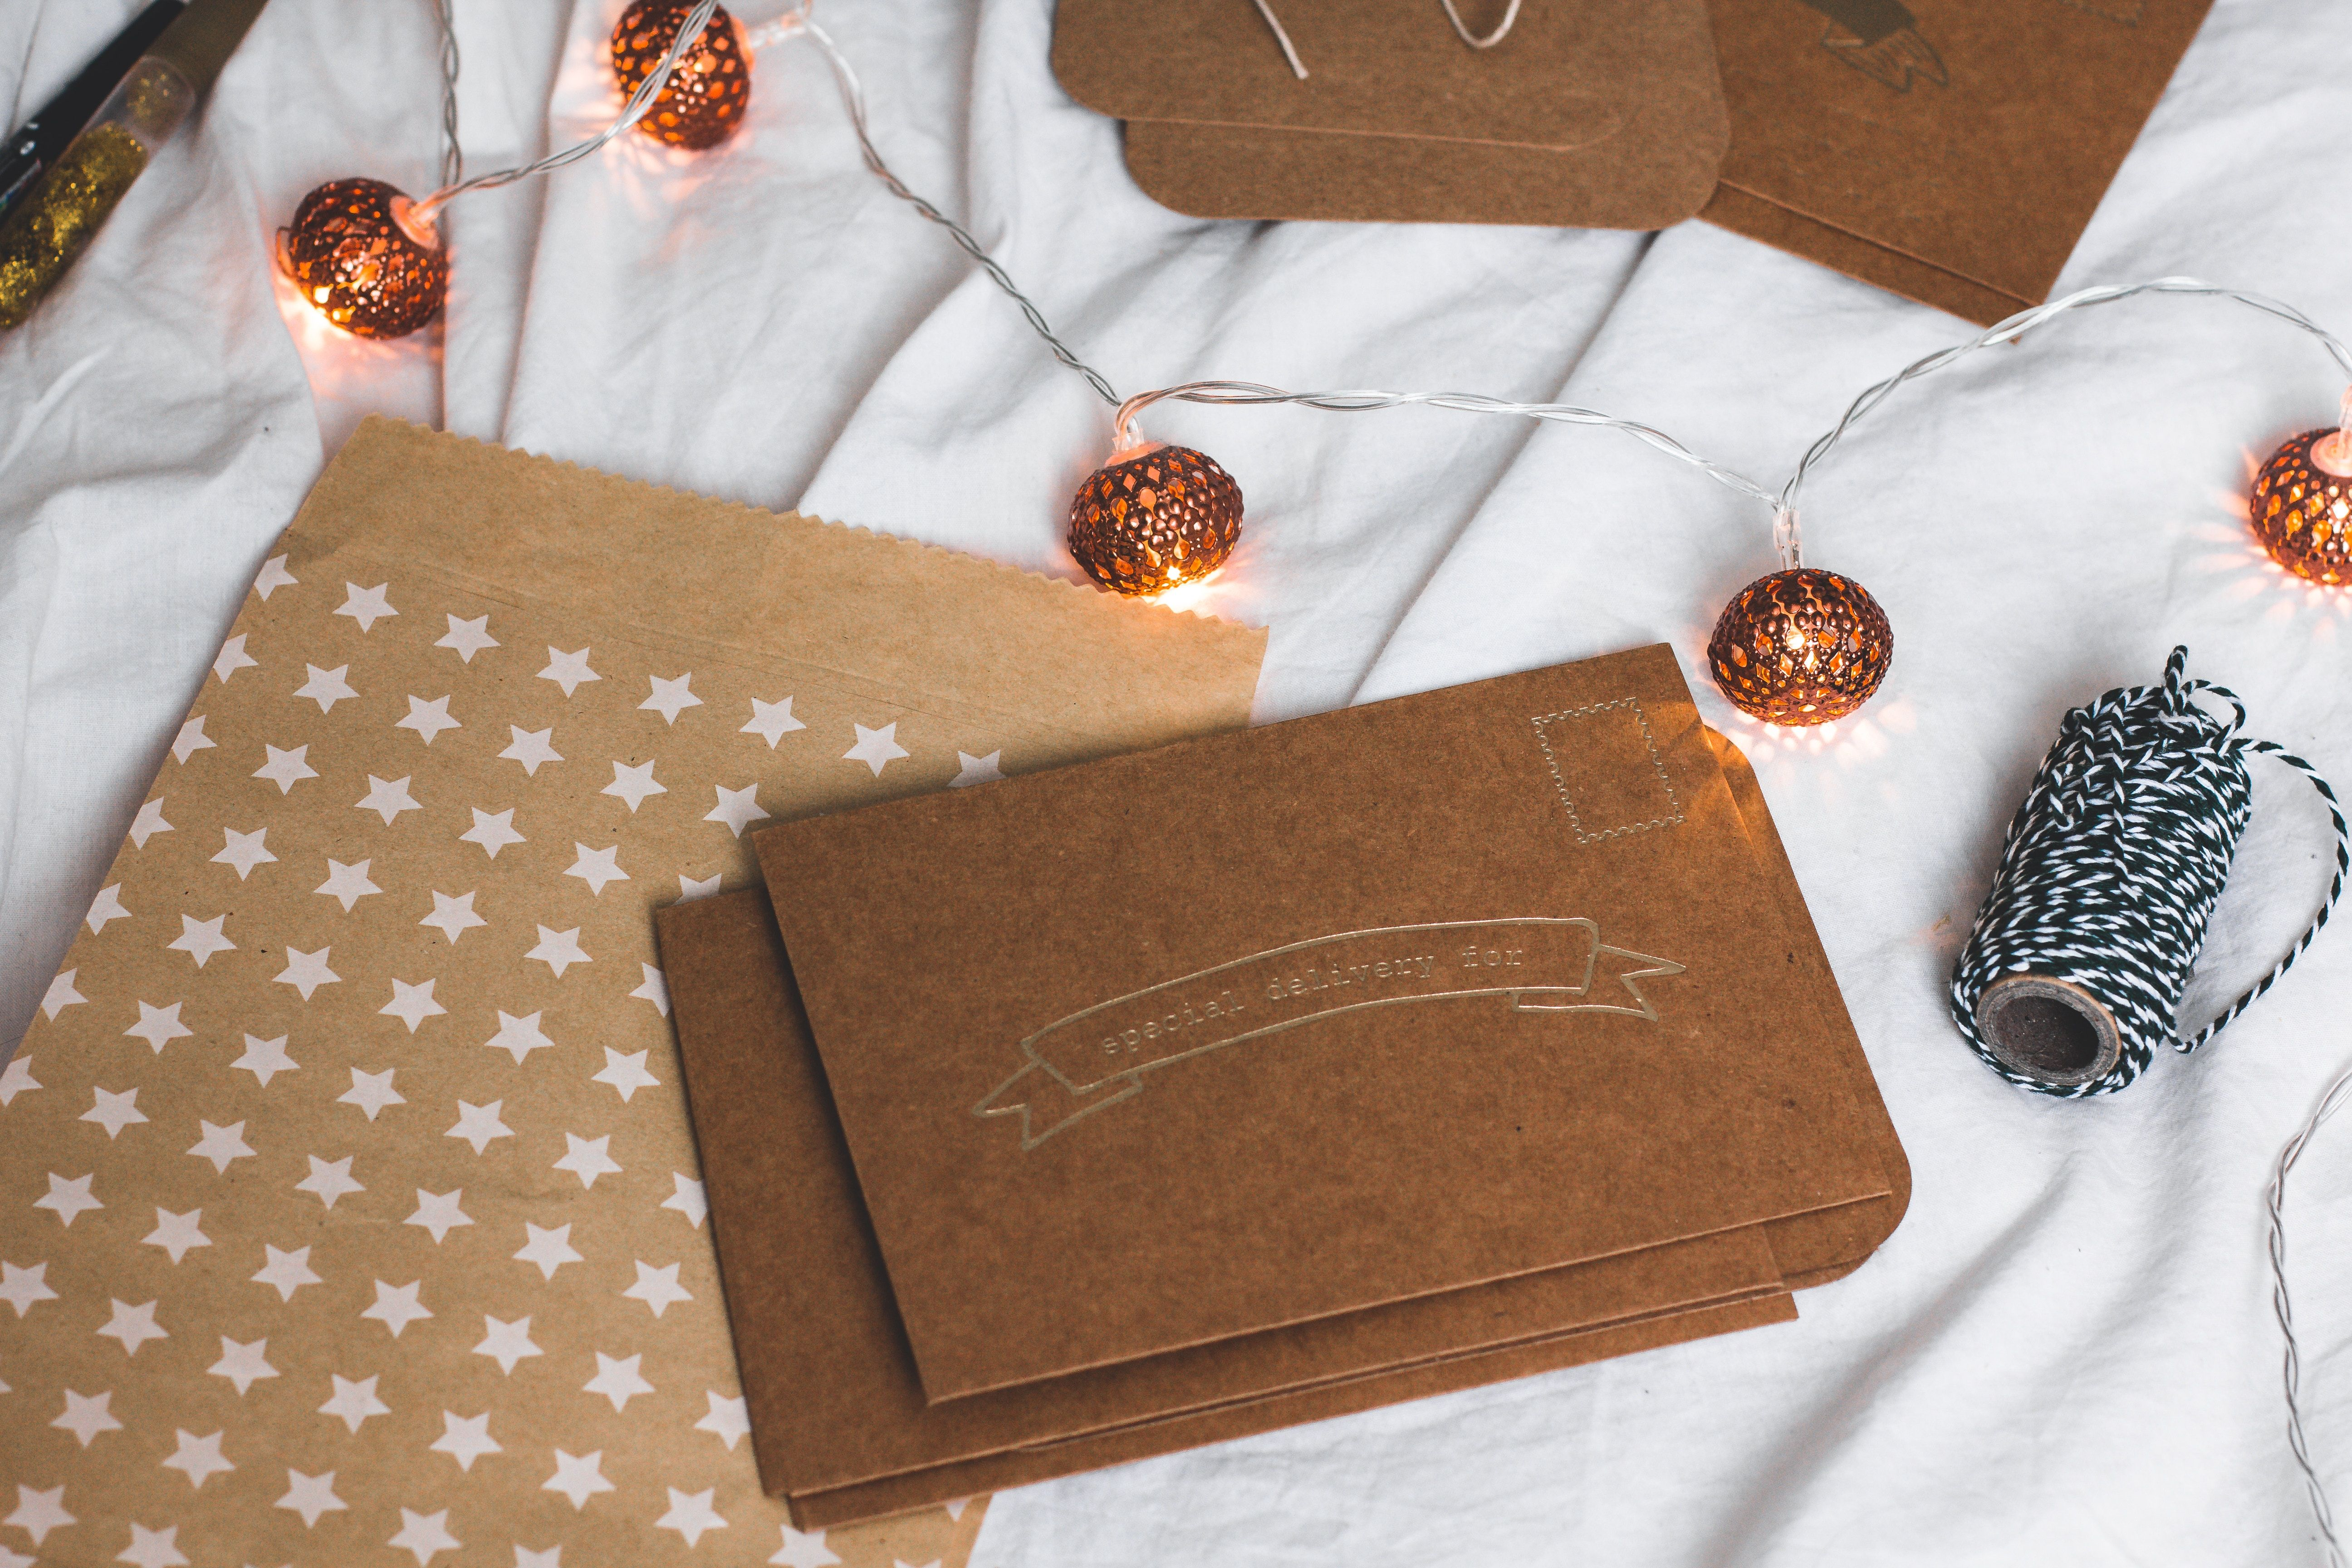 Play Up Your Holiday Photo Album with Gift Wrapping